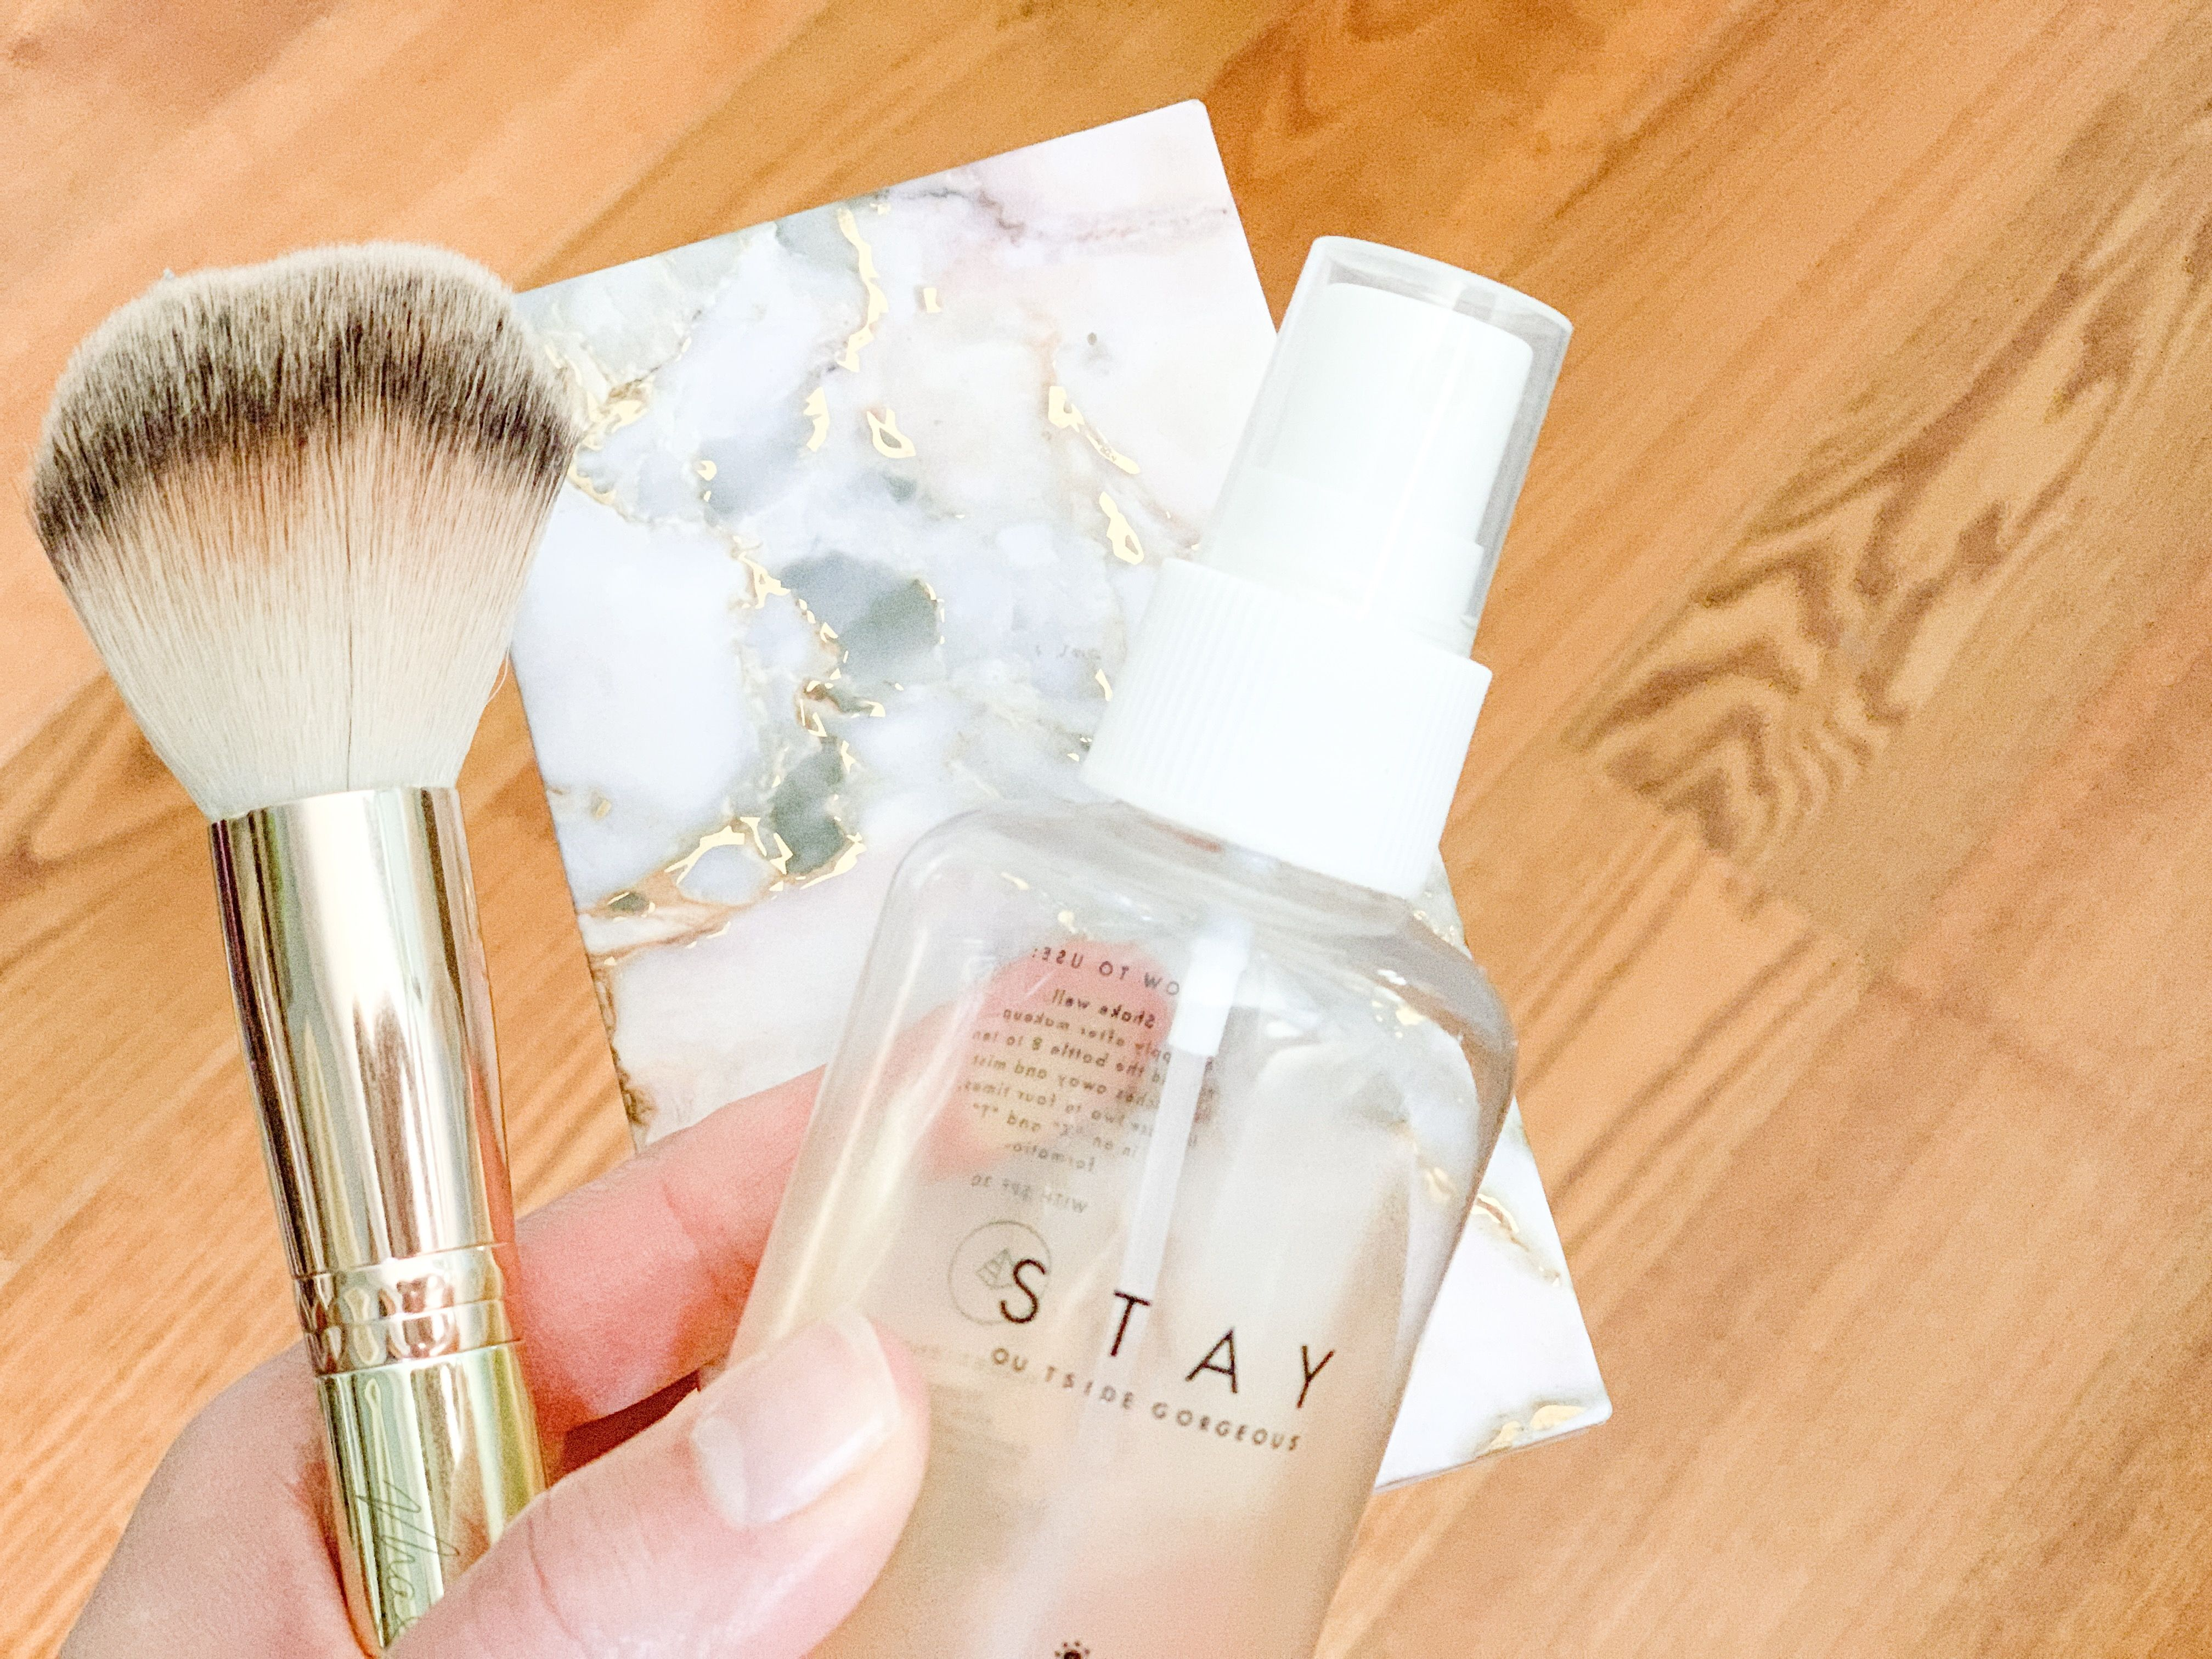 Here S A Barely There Makeup Look For Those Summer Days At The Pool Beach Or Lake When You Don T Want To Wea Barely There Makeup Maskcara Beauty Makeup Spray